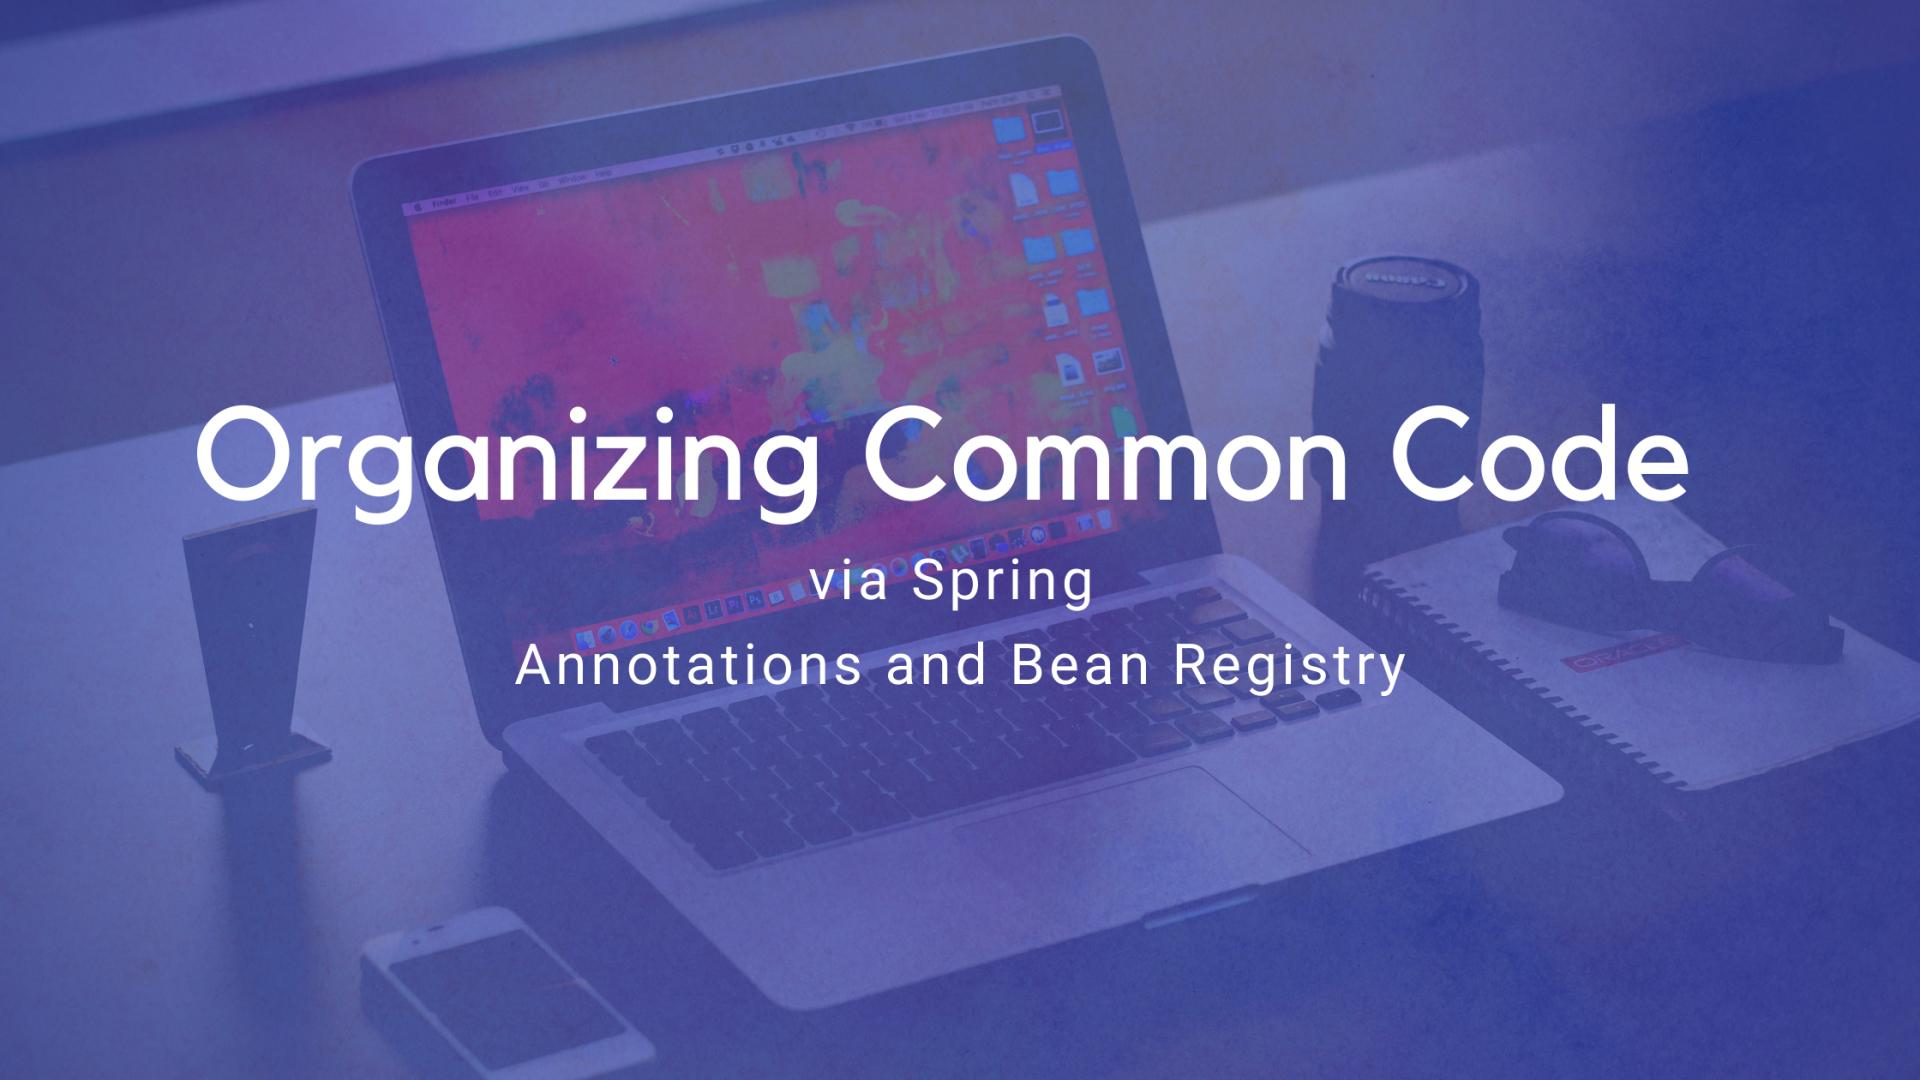 Organising Common Code via Spring Annotations and Bean Registry